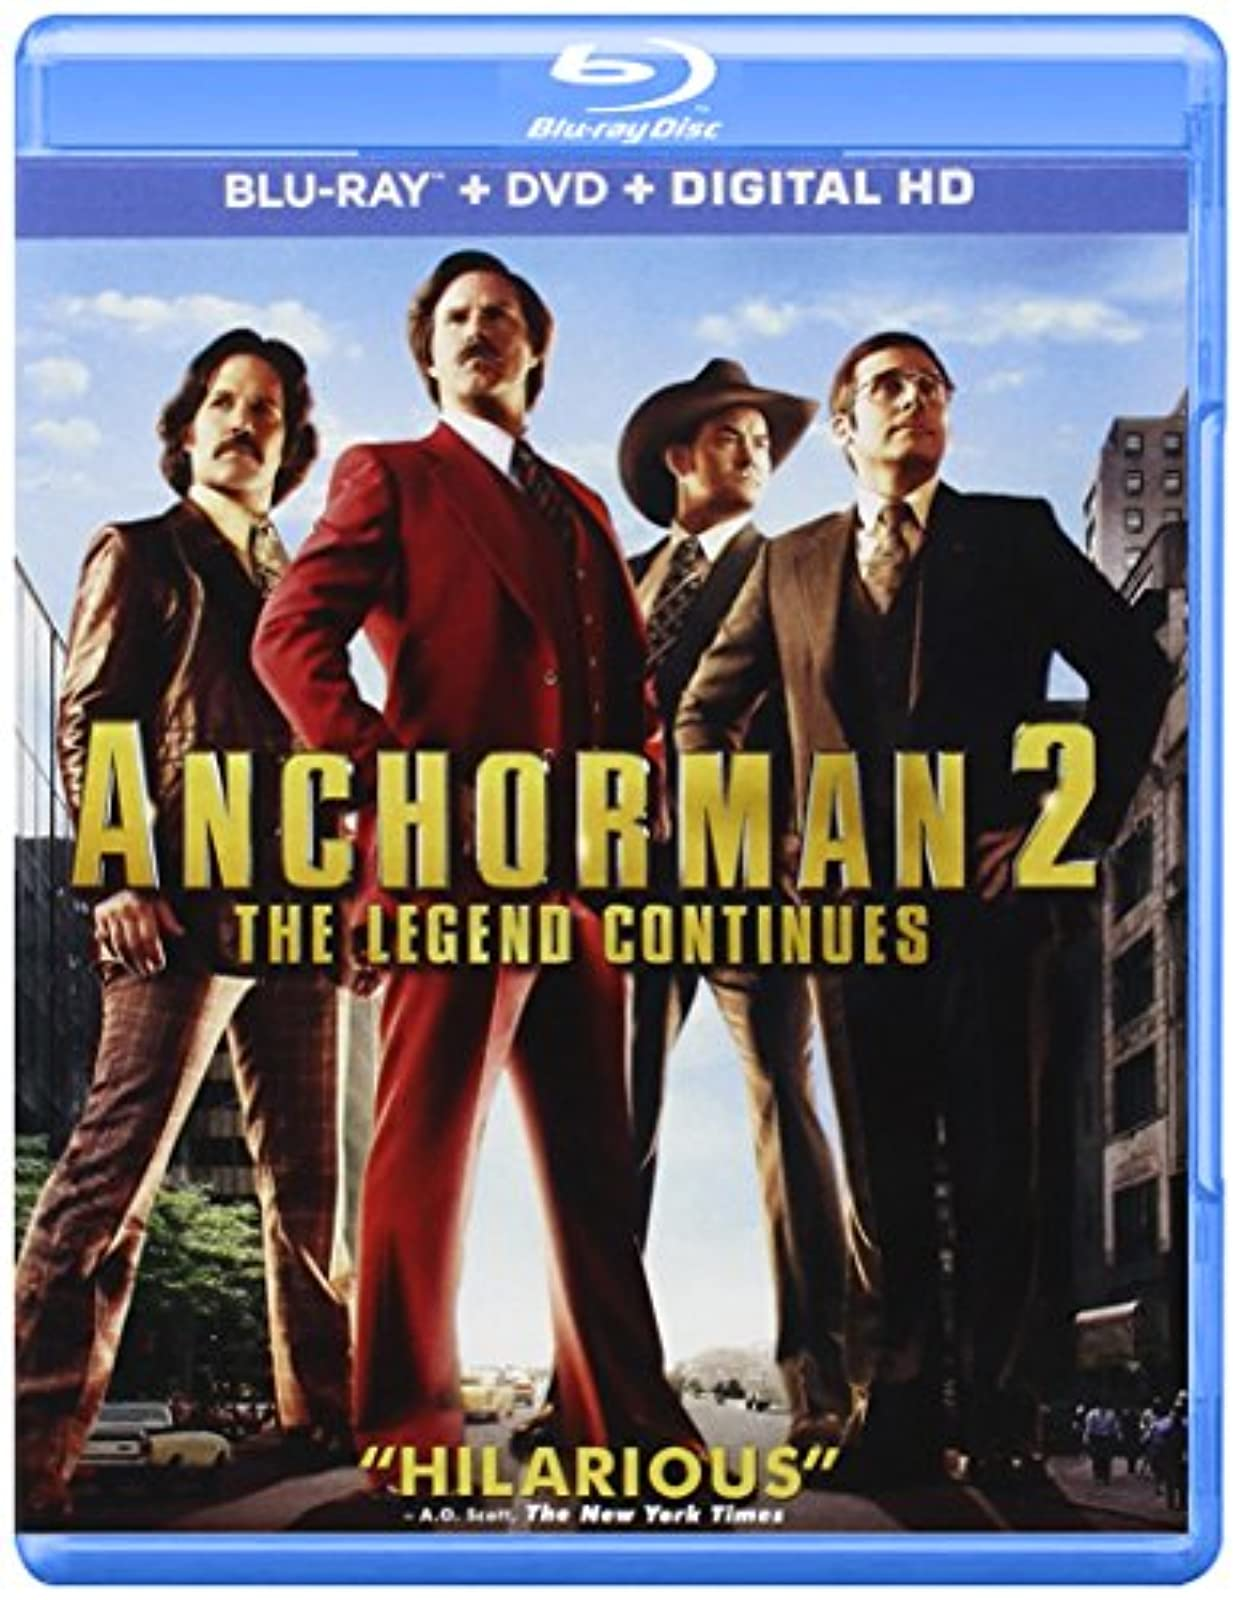 Anchorman 2: The Legend Continues Digital HD On Blu-Ray With Will